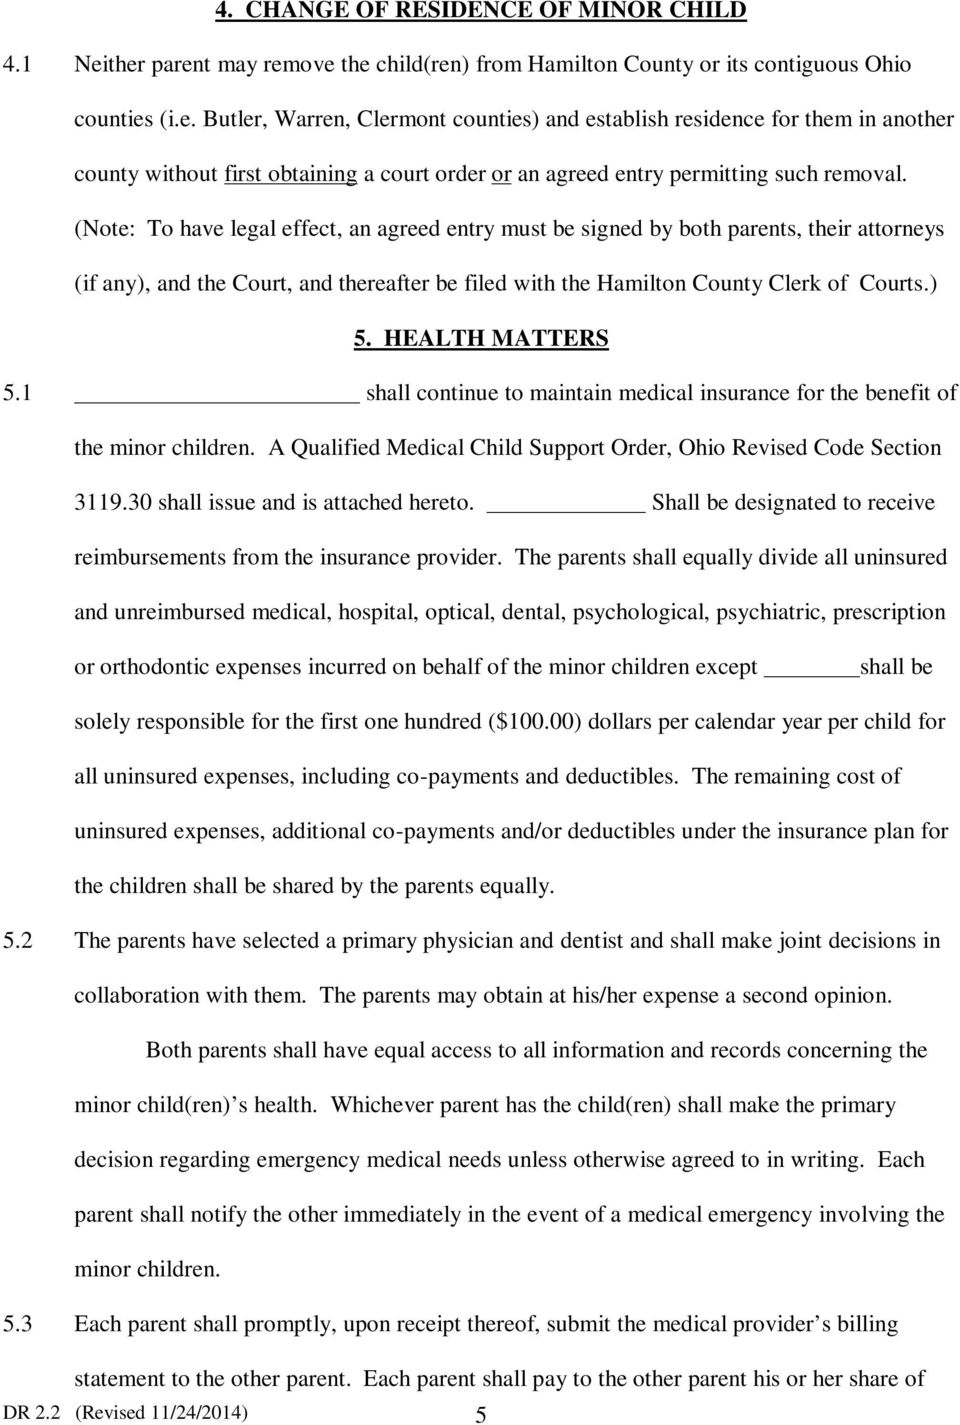 (Note: To have legal effect, an agreed entry must be signed by both parents, their attorneys (if any), and the Court, and thereafter be filed with the Hamilton County Clerk of Courts.) 5.